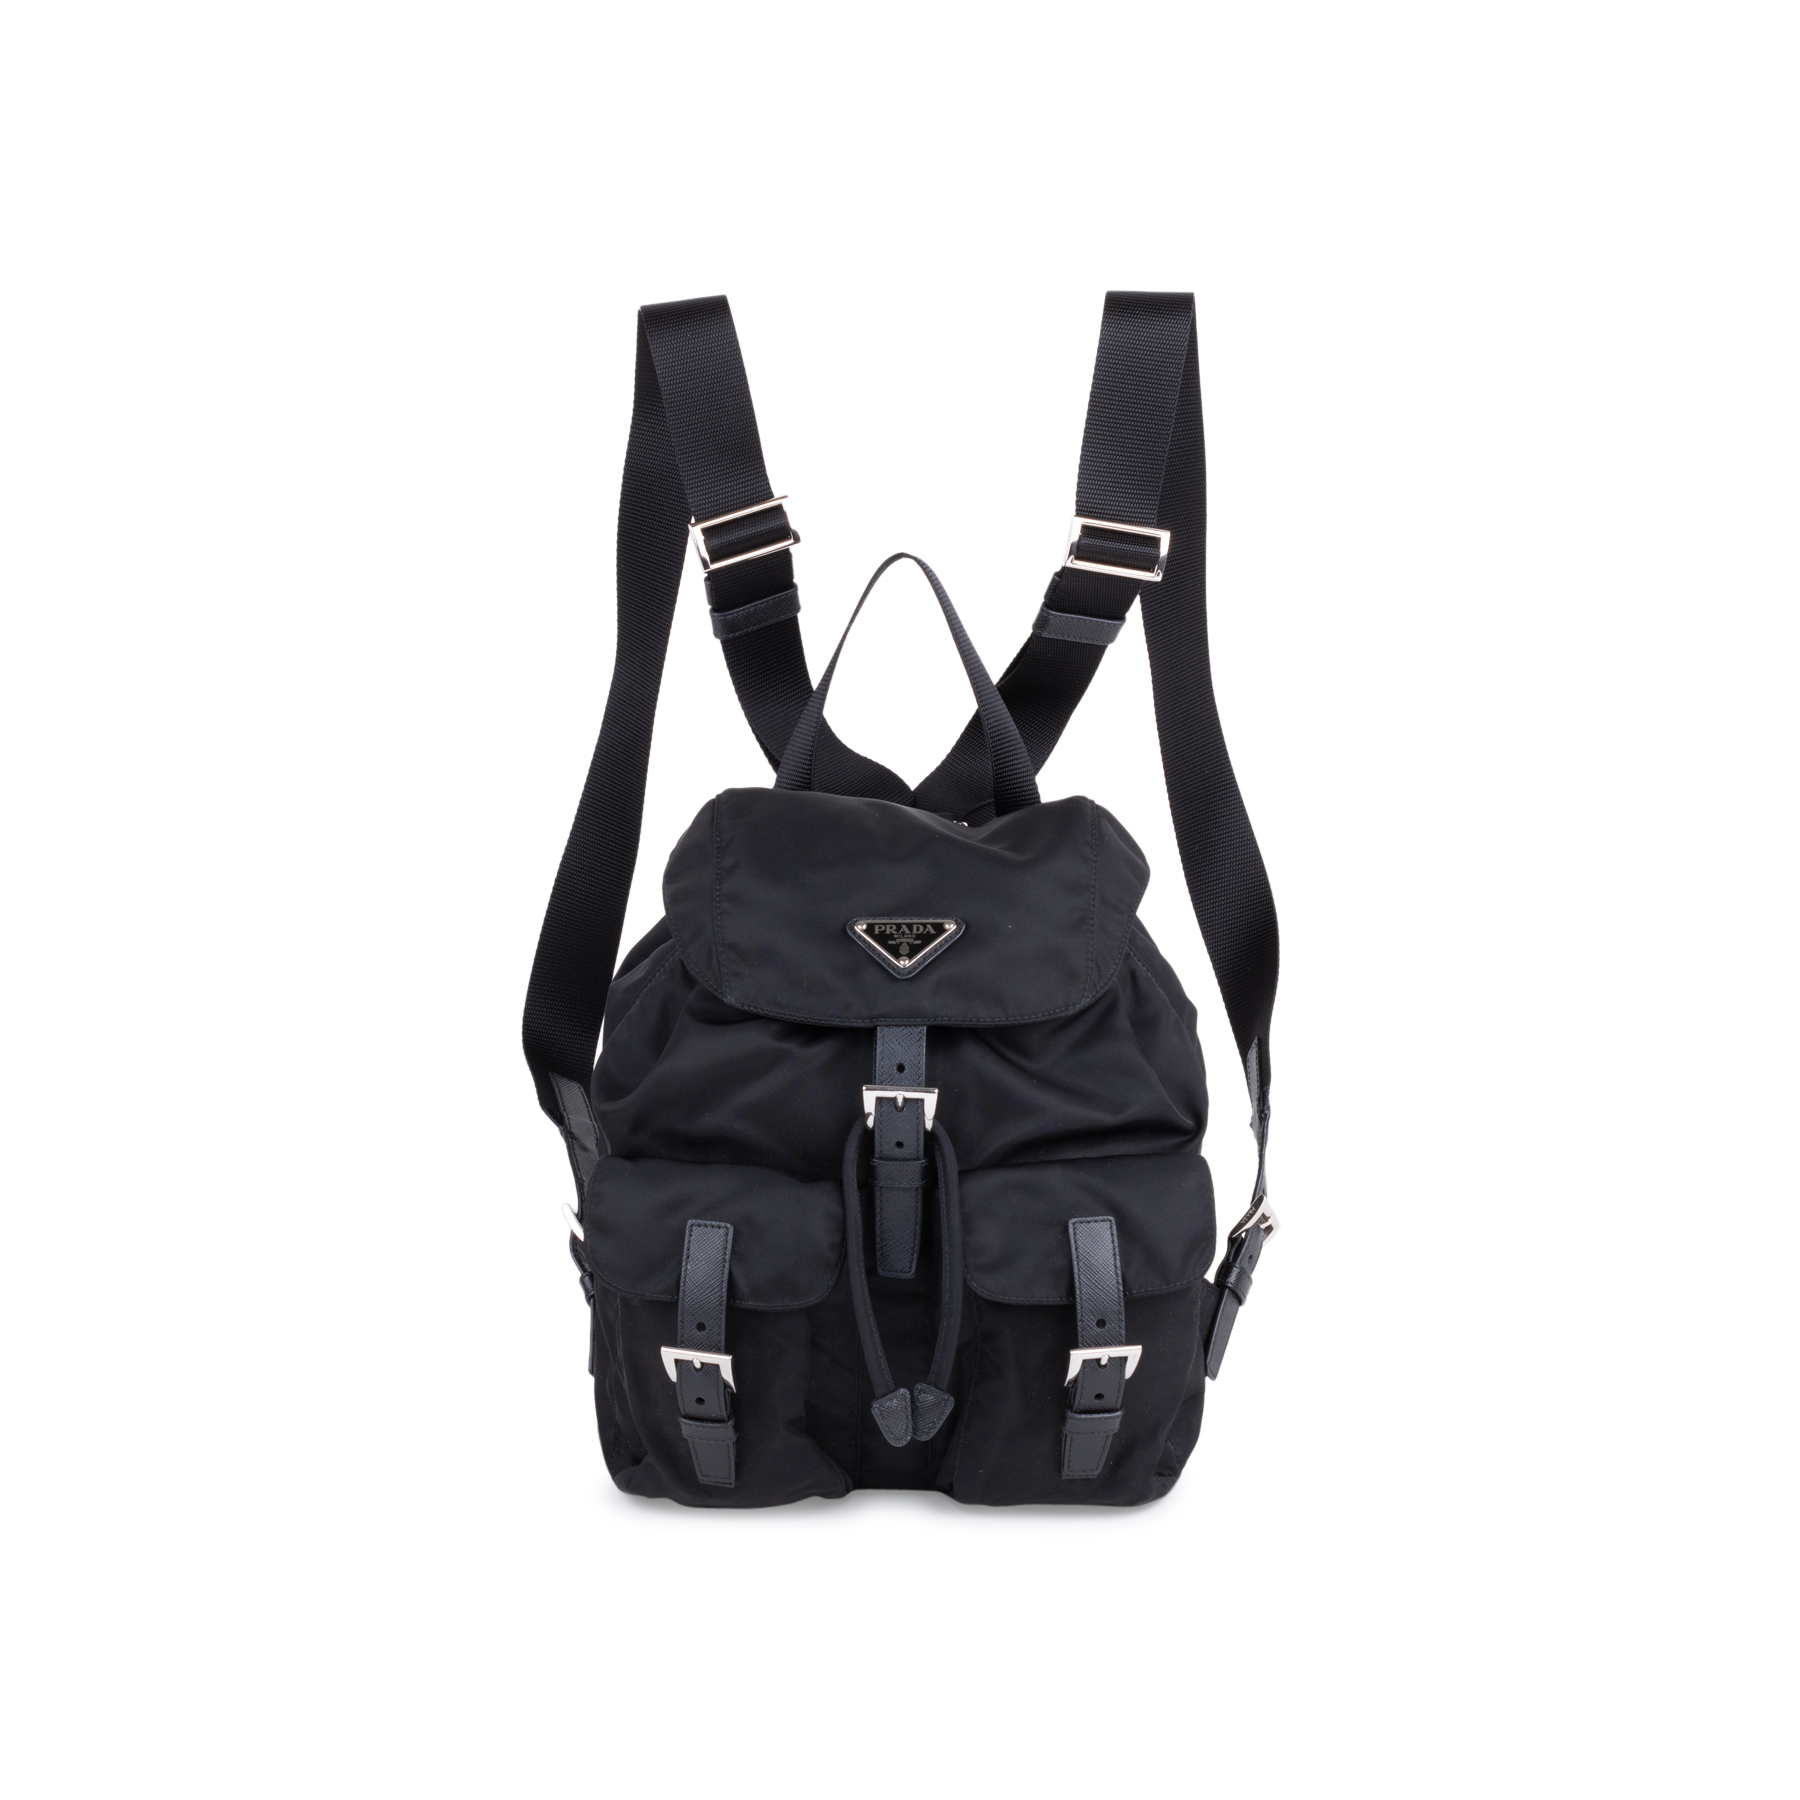 6736972bbf65 Authentic Second Hand Prada Small Vela Nylon Backpack (PSS-034-00031) | THE  FIFTH COLLECTION